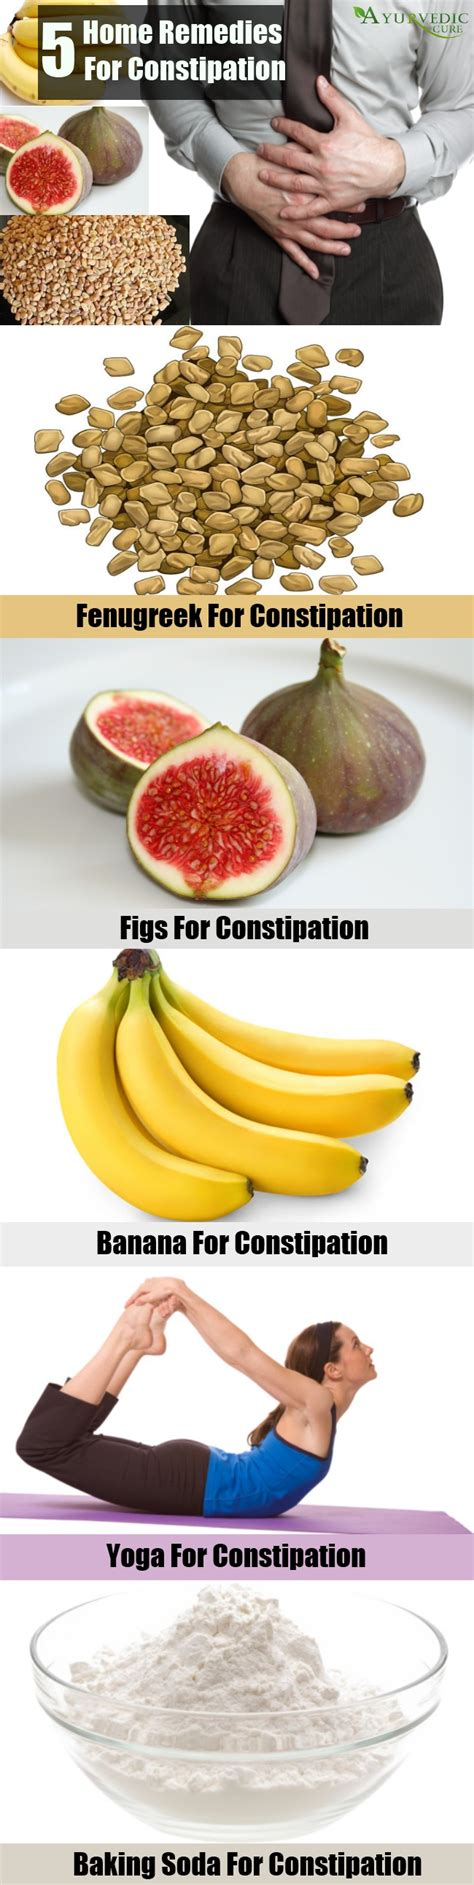 best laxatives home remedies for constipation